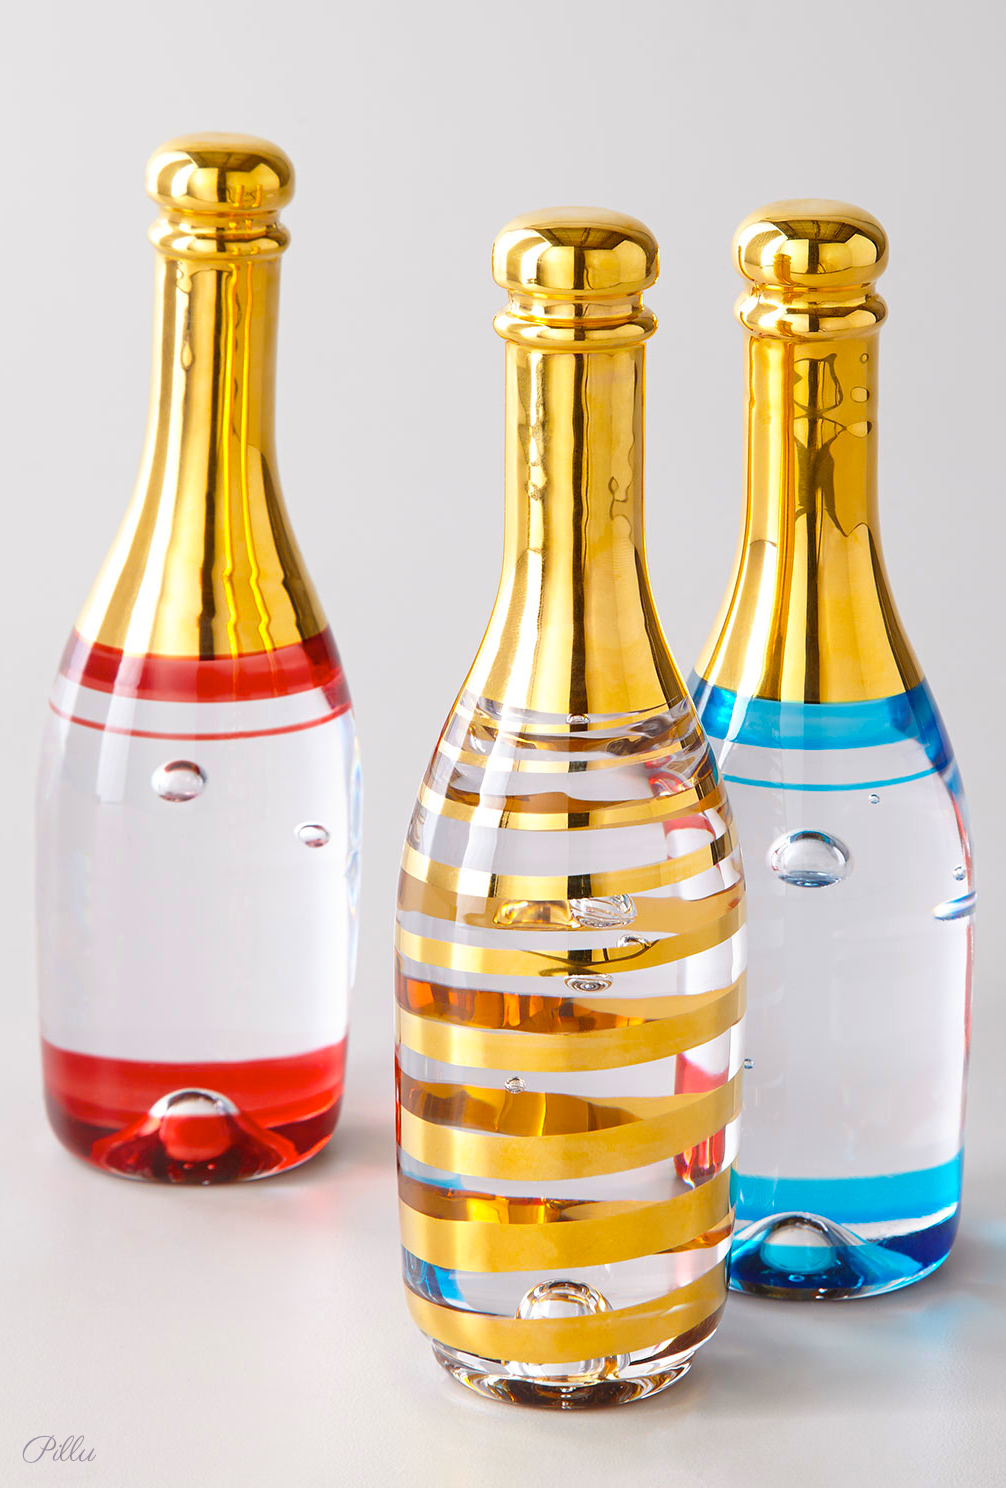 Bubbly Design Co: Kosta Boda Celebrate Champagne Bottle. Designed By Kjell